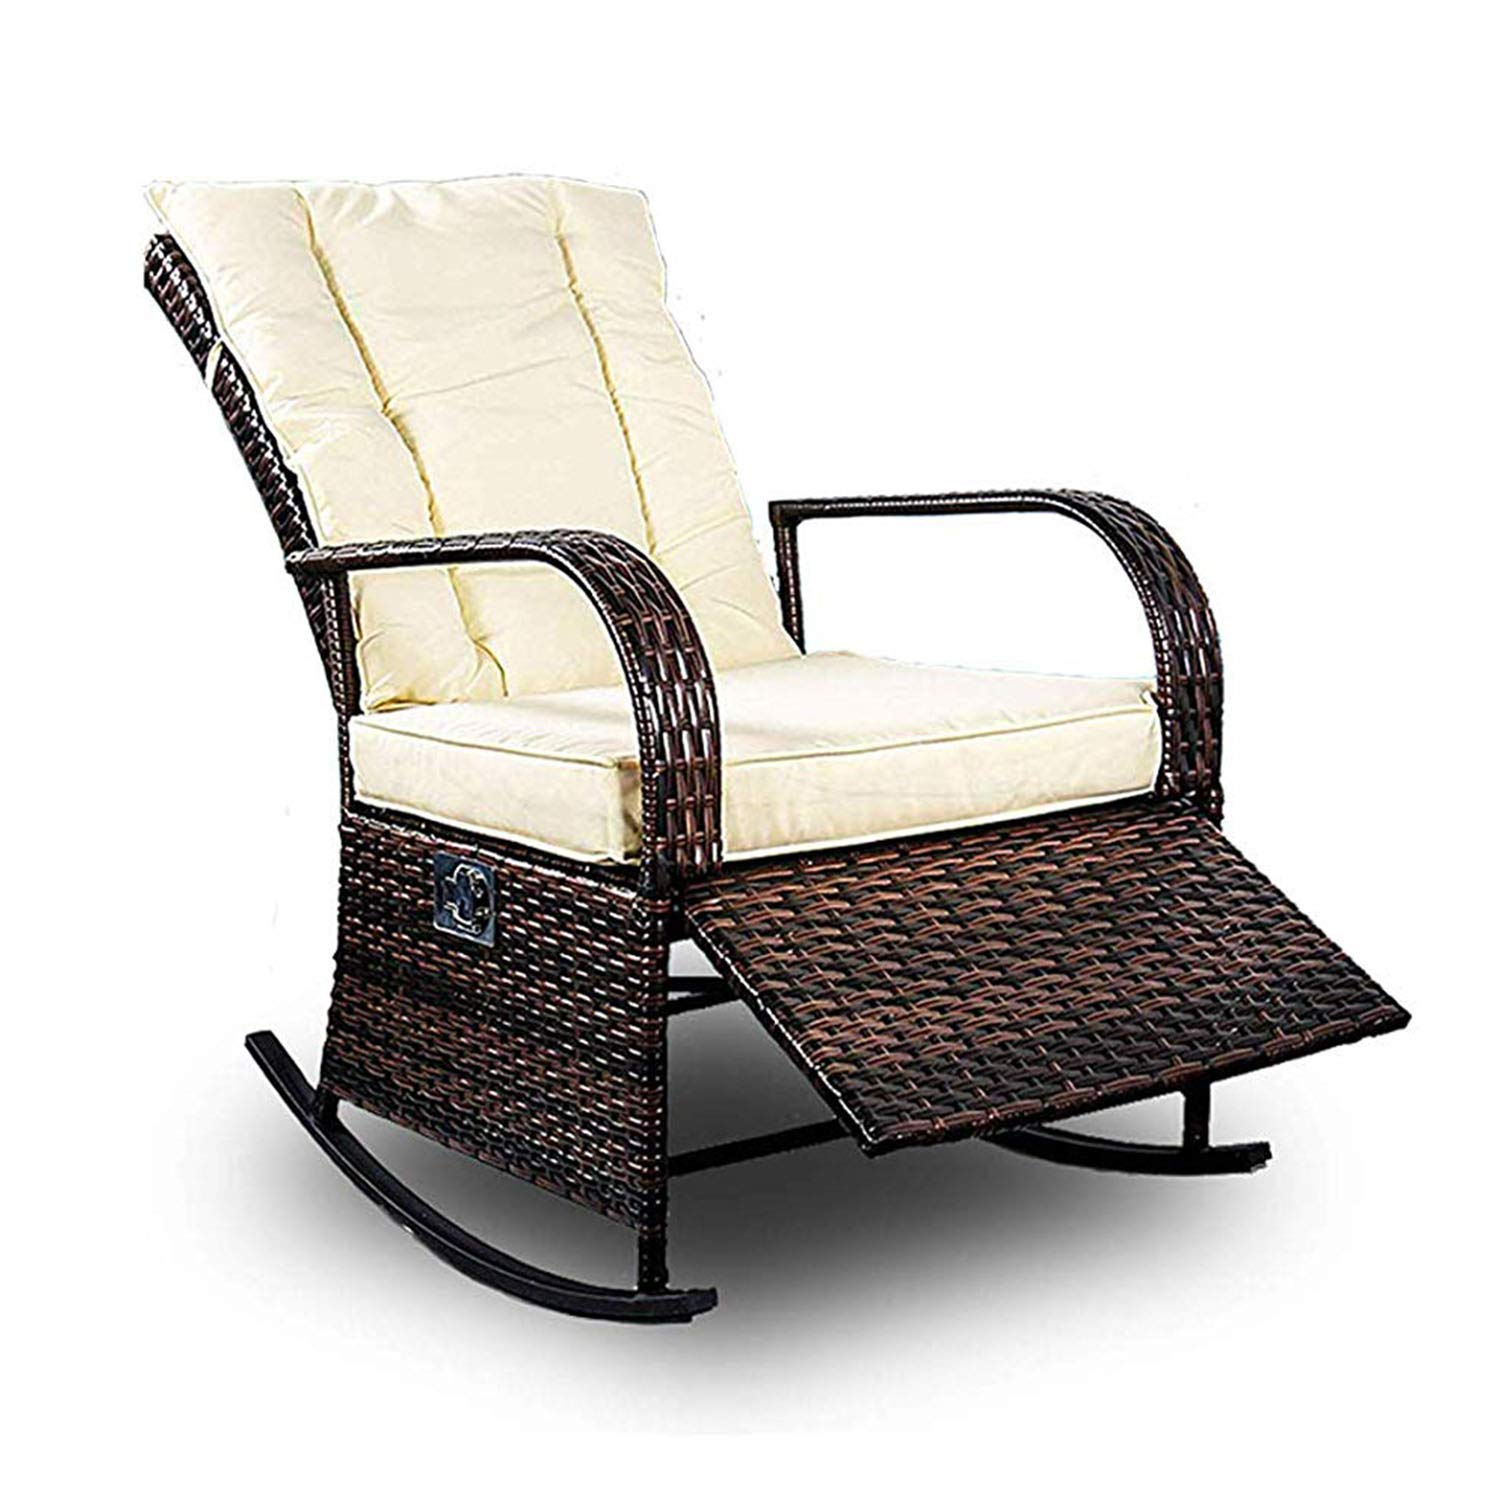 Mupater Patio PE Rattan Wicker Rocking Chair Auto Adjustable Patio Sofa Relaxing Lounge Chair Outdoor Furniture (Brown)